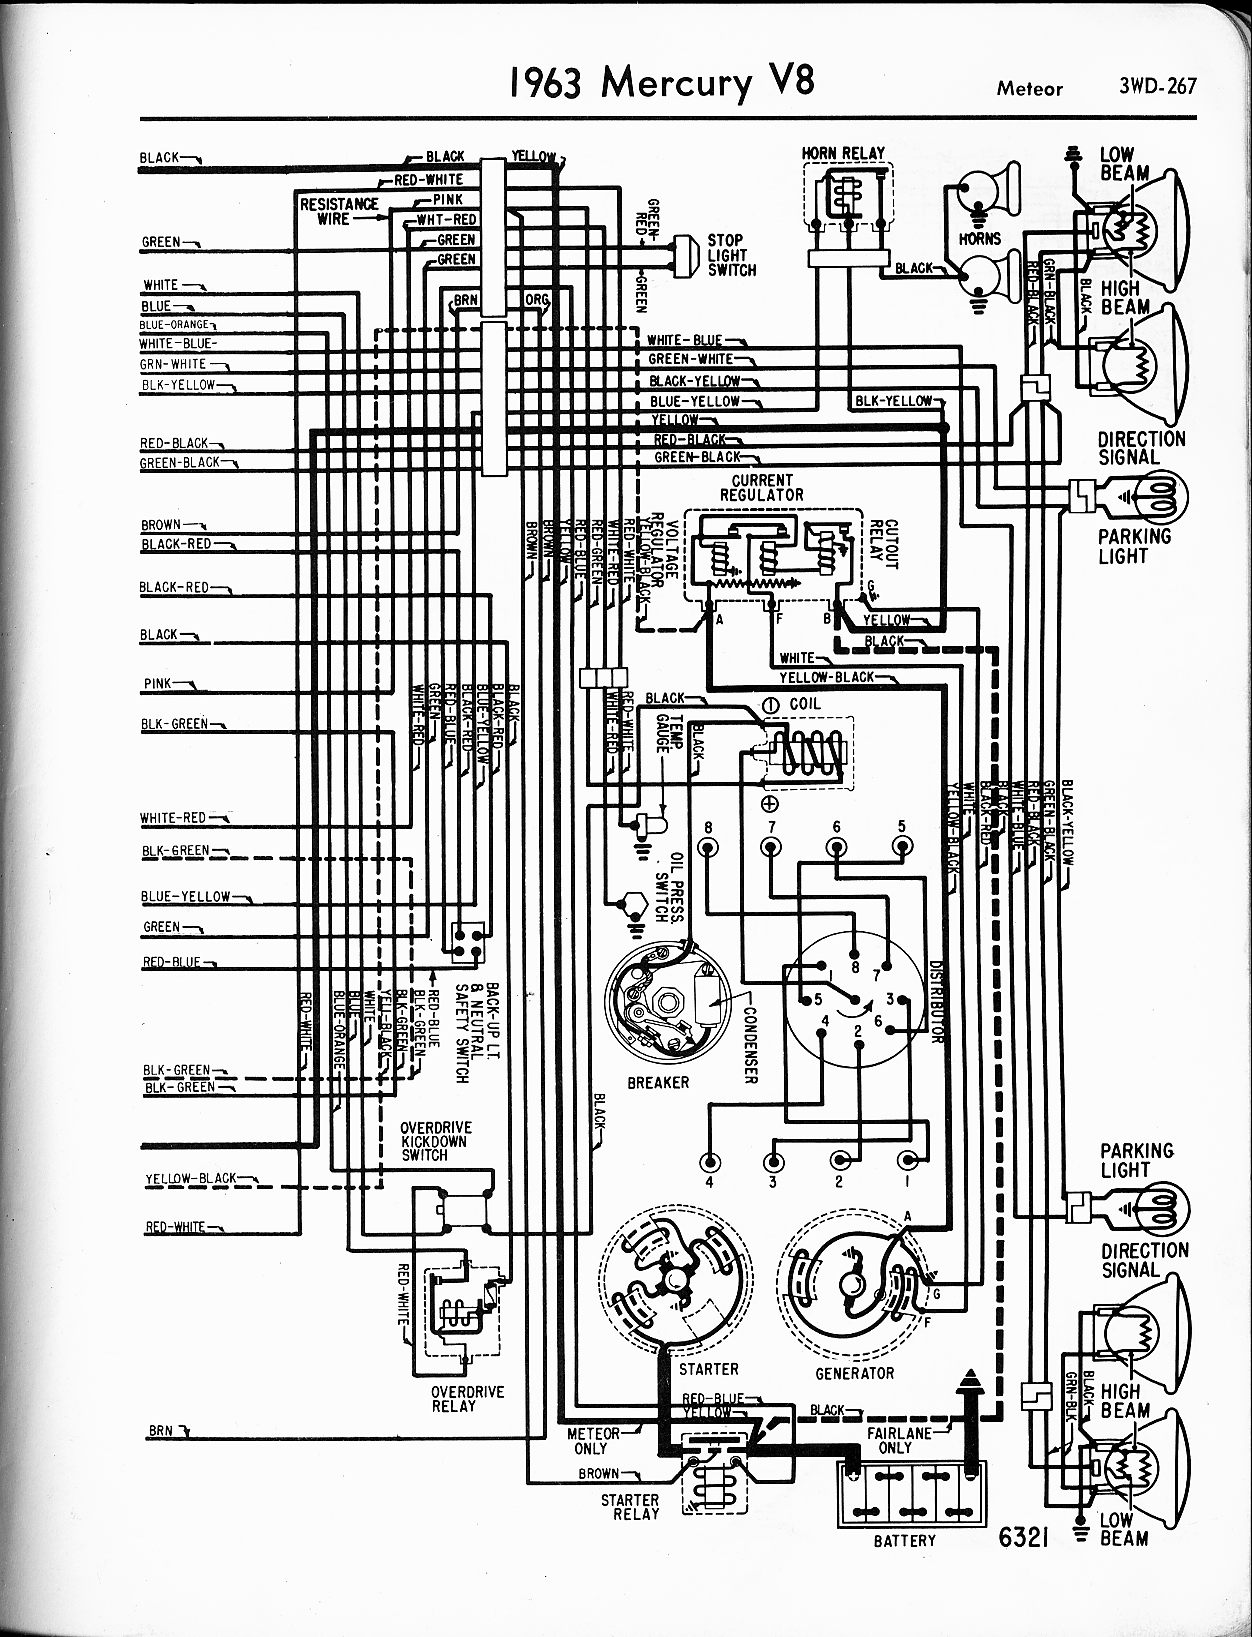 1963 mercury monterey wiring diagram wiring diagram img 1963 Chevy Nova Wiring Diagram